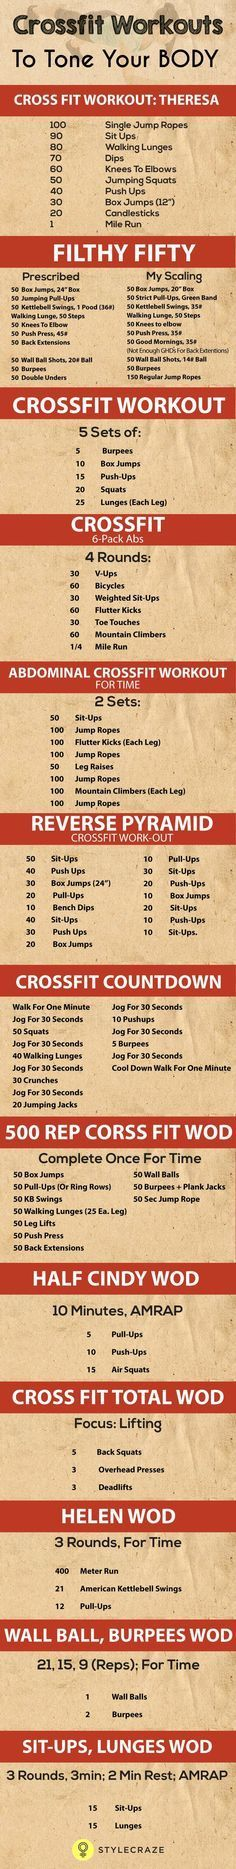 20 Effective Crossfit Workouts To Tone Your Body #diet